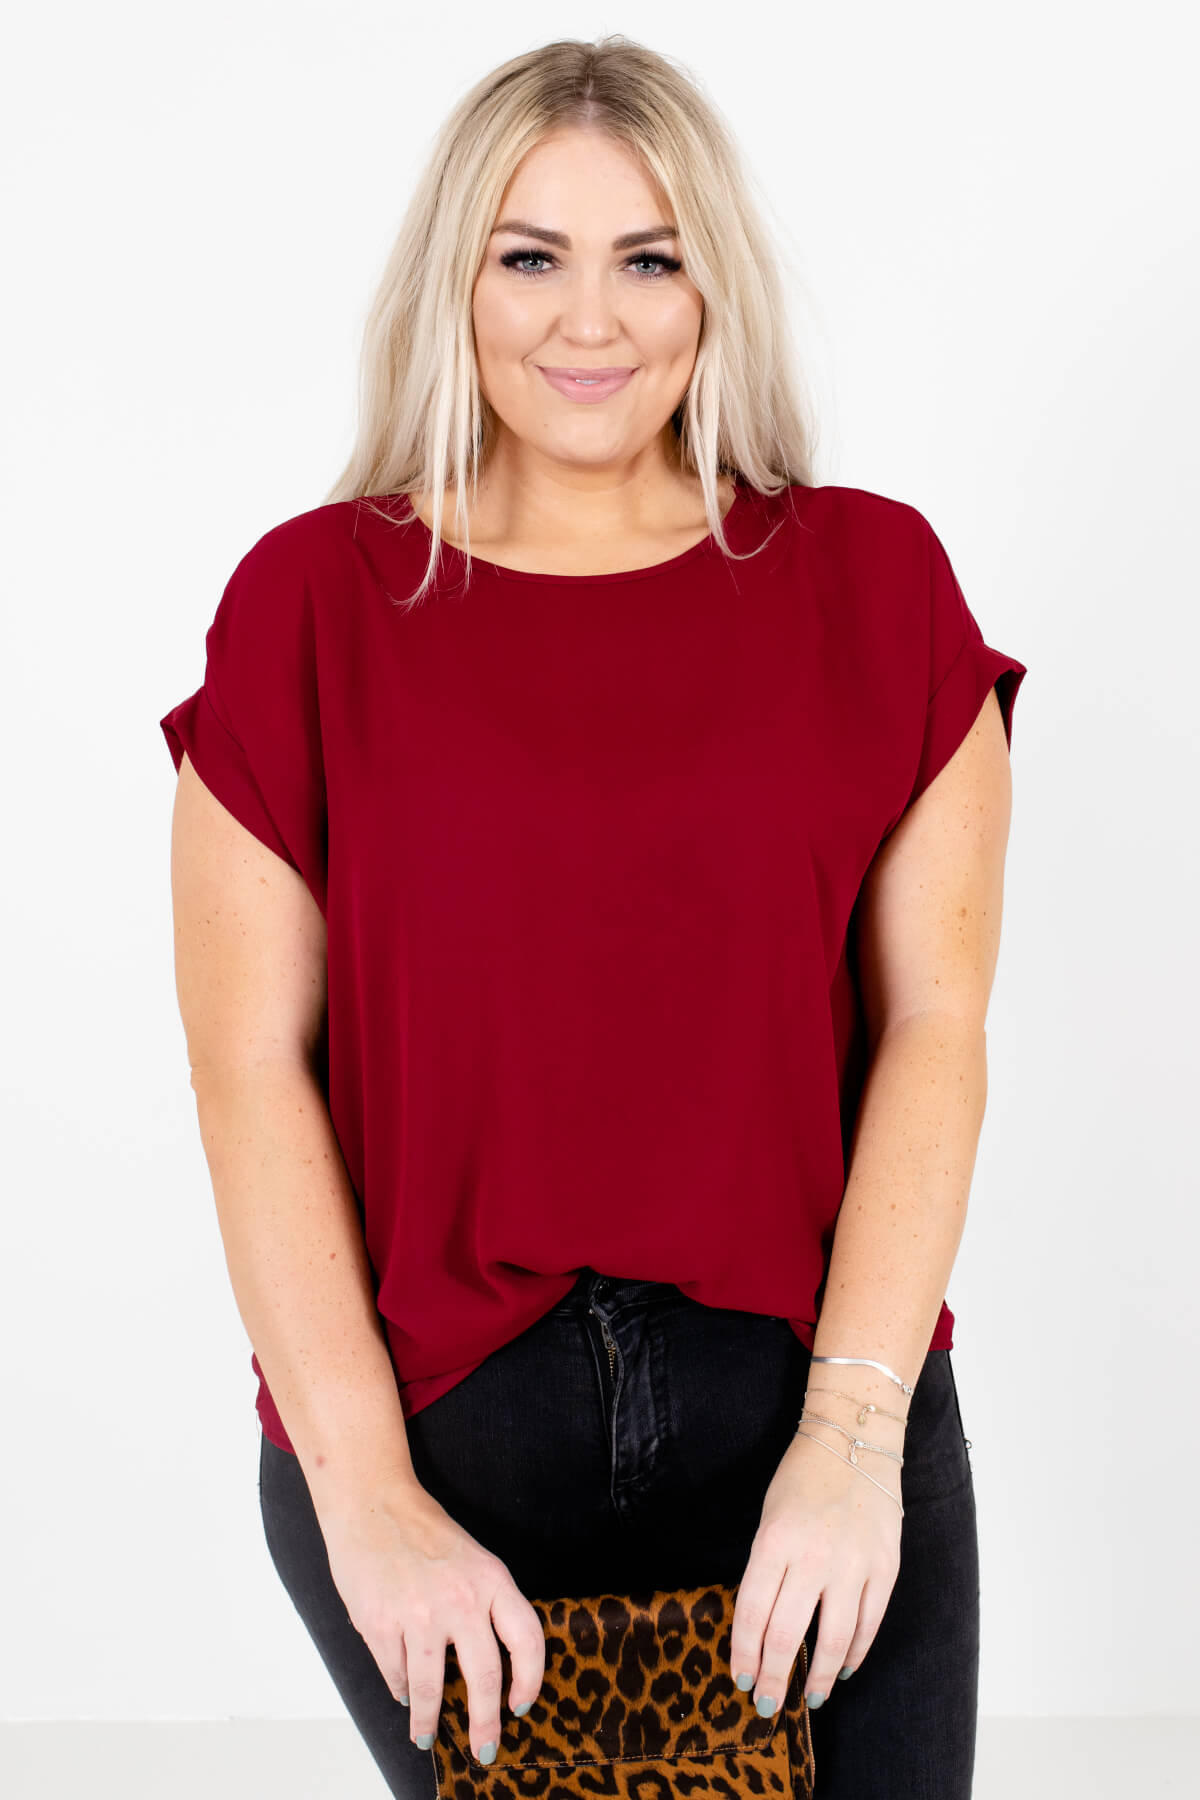 Burgundy Red Lightweight and Flowy Boutique Blouses for Women